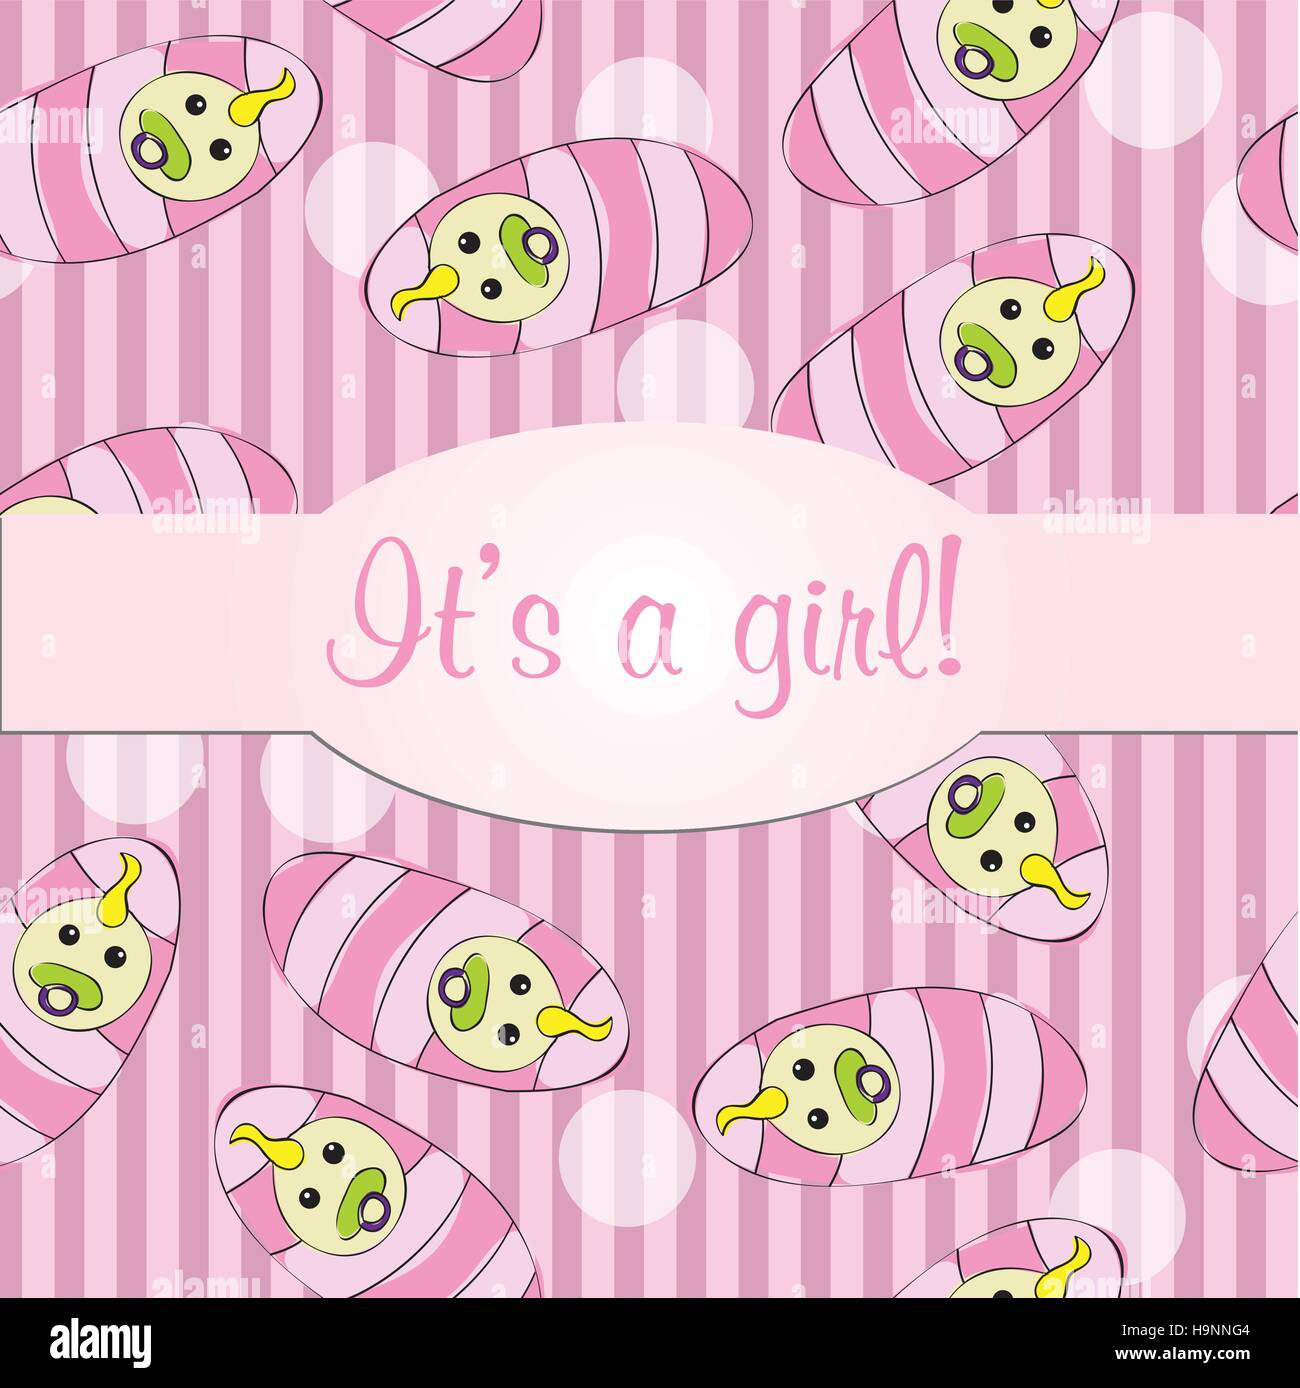 Baby girls seamless pattern background - vector illustration for card - it is a girl - Stock Vector